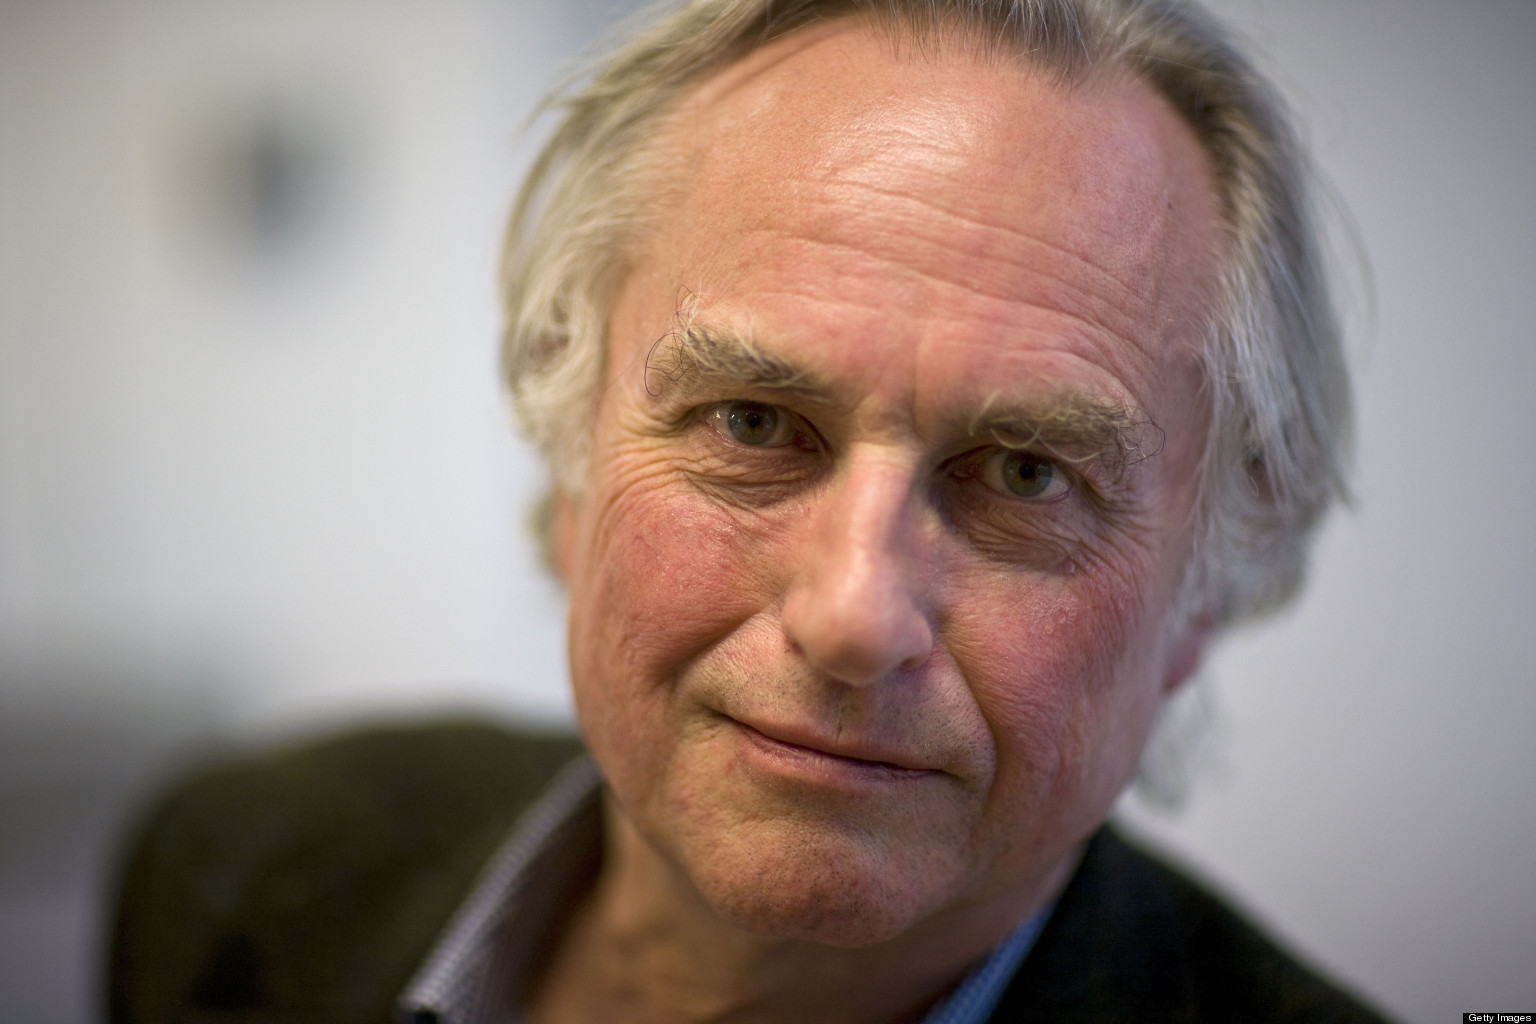 Picture from the Huffing Post - huffingtonpost.co.uk/2014/08/20/richard-dawkins-sparks-twitter-debate-over-aborting-down-syndrome-fetuses_n_5694961.html